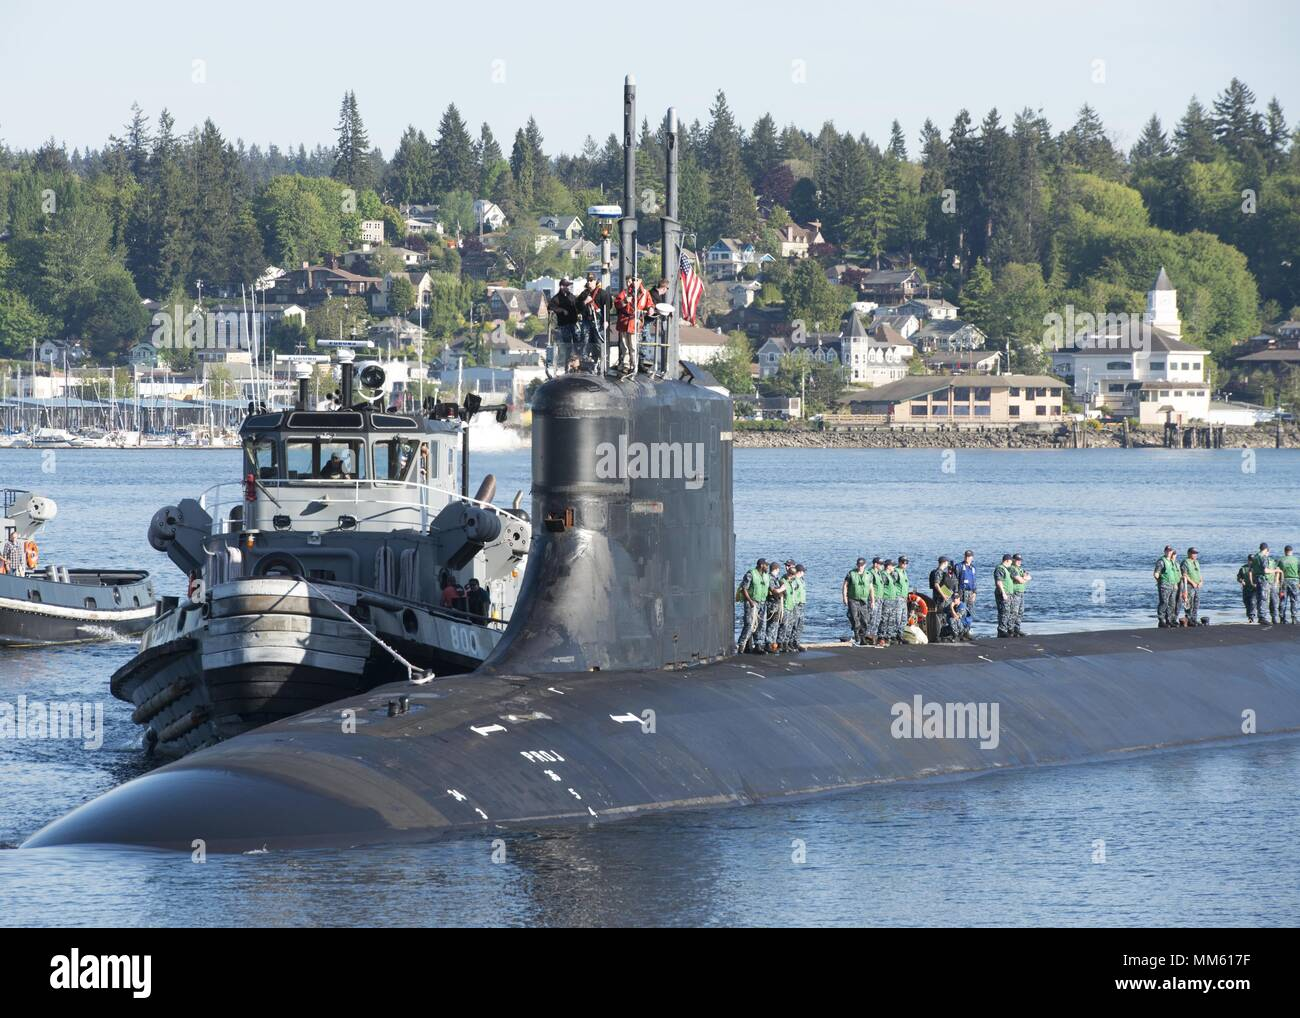 BREMERTON, Wash. (May 7, 2018) Sailors assigned to the Seawolf-class fast-attack submarine USS Connecticut (SSN 22) return home to Naval Base Kitsap-Bremerton after the completion of the multinational maritime Ice Exercise (ICEX) in the Arctic Circle, May 7, 2018. ICEX 2018 is a five-week exercise that allows the Navy to assess its operational readiness in the Arctic, increase experience in the region, advance understanding of the Arctic environment, and continue to develop relationships with other services, allies and partner organizations. (U.S. Navy photo by Mass Communication Specialist 1s - Stock Image